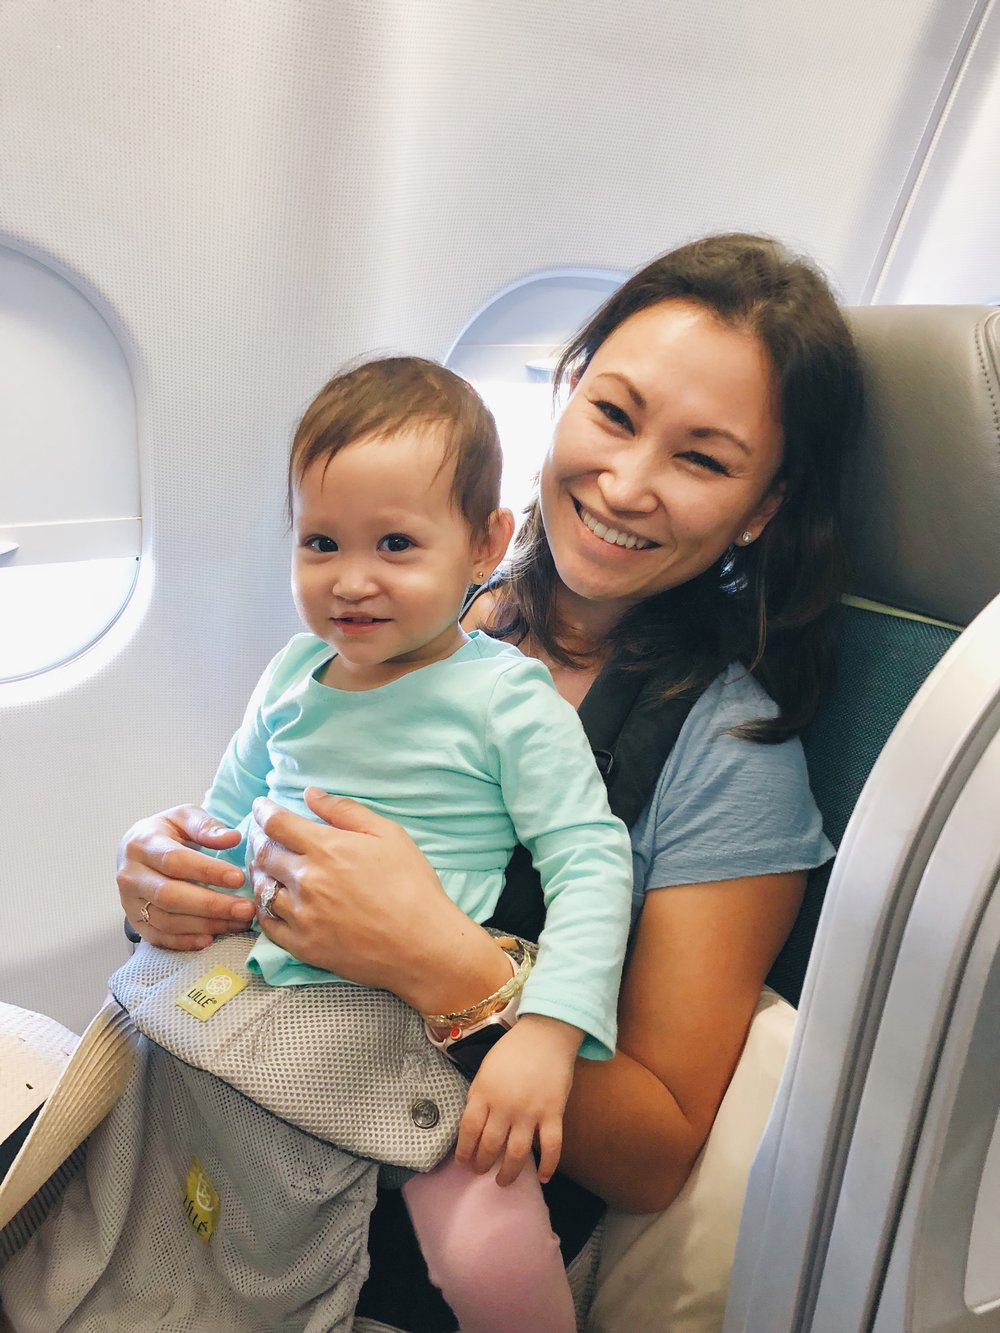 Aer Lingus Business Class lap baby